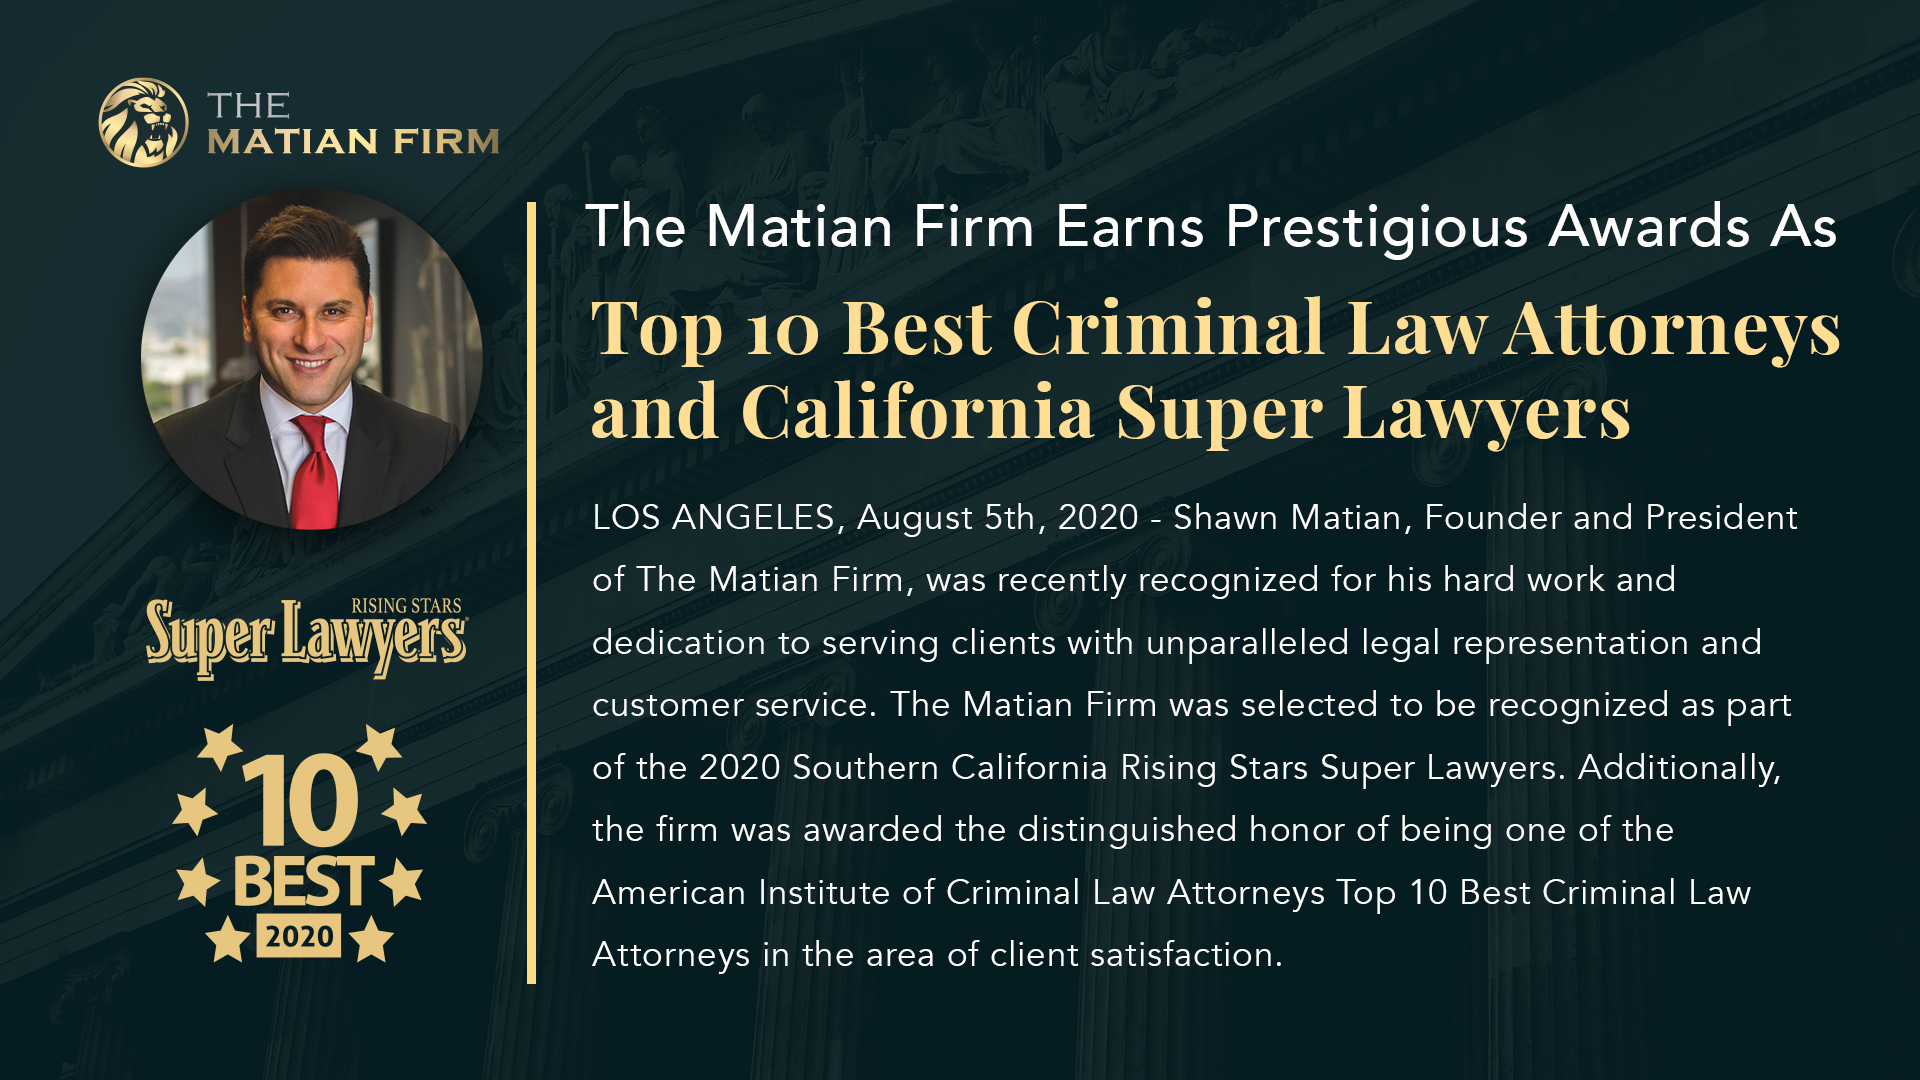 The Matian Firm Earns Prestigious Awards as Top 10 Best Criminal Law Attorneys and California Super Lawyers